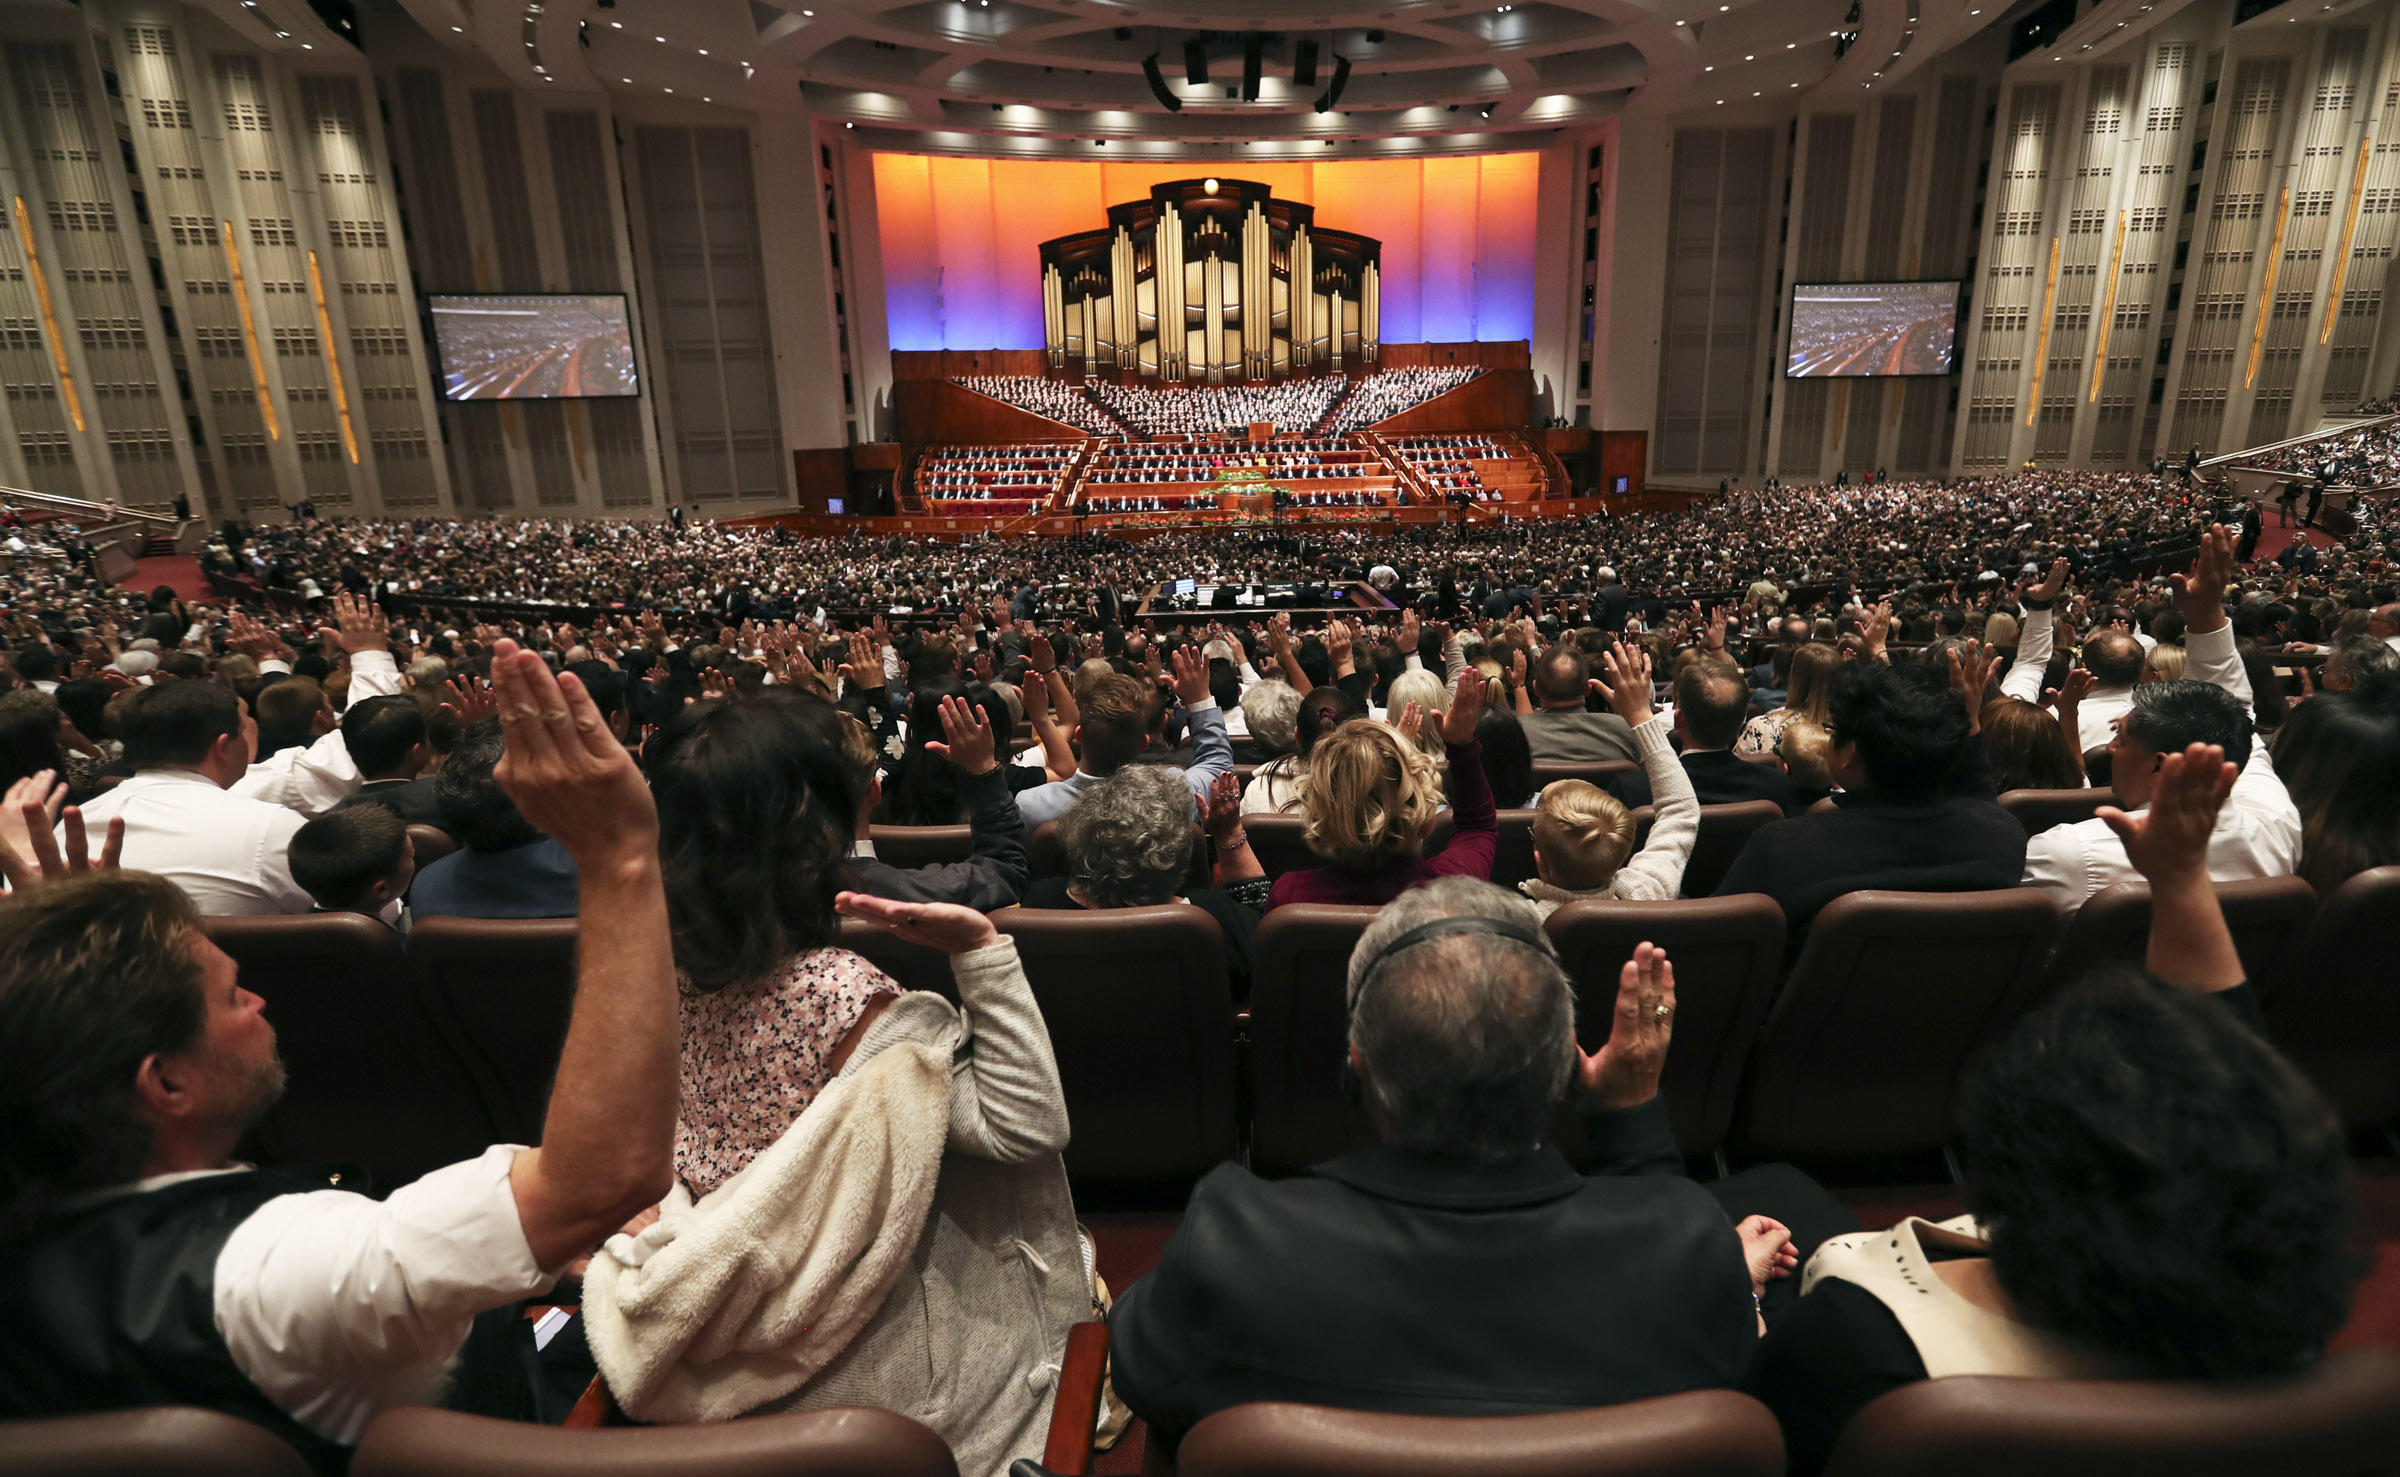 Attendees hold up their hands as they sustain church leaders during the Saturday afternoon session of the 189th Annual General Conference of The Church of Jesus Christ of Latter-day Saints in Salt Lake City on Saturday, April 6, 2019.